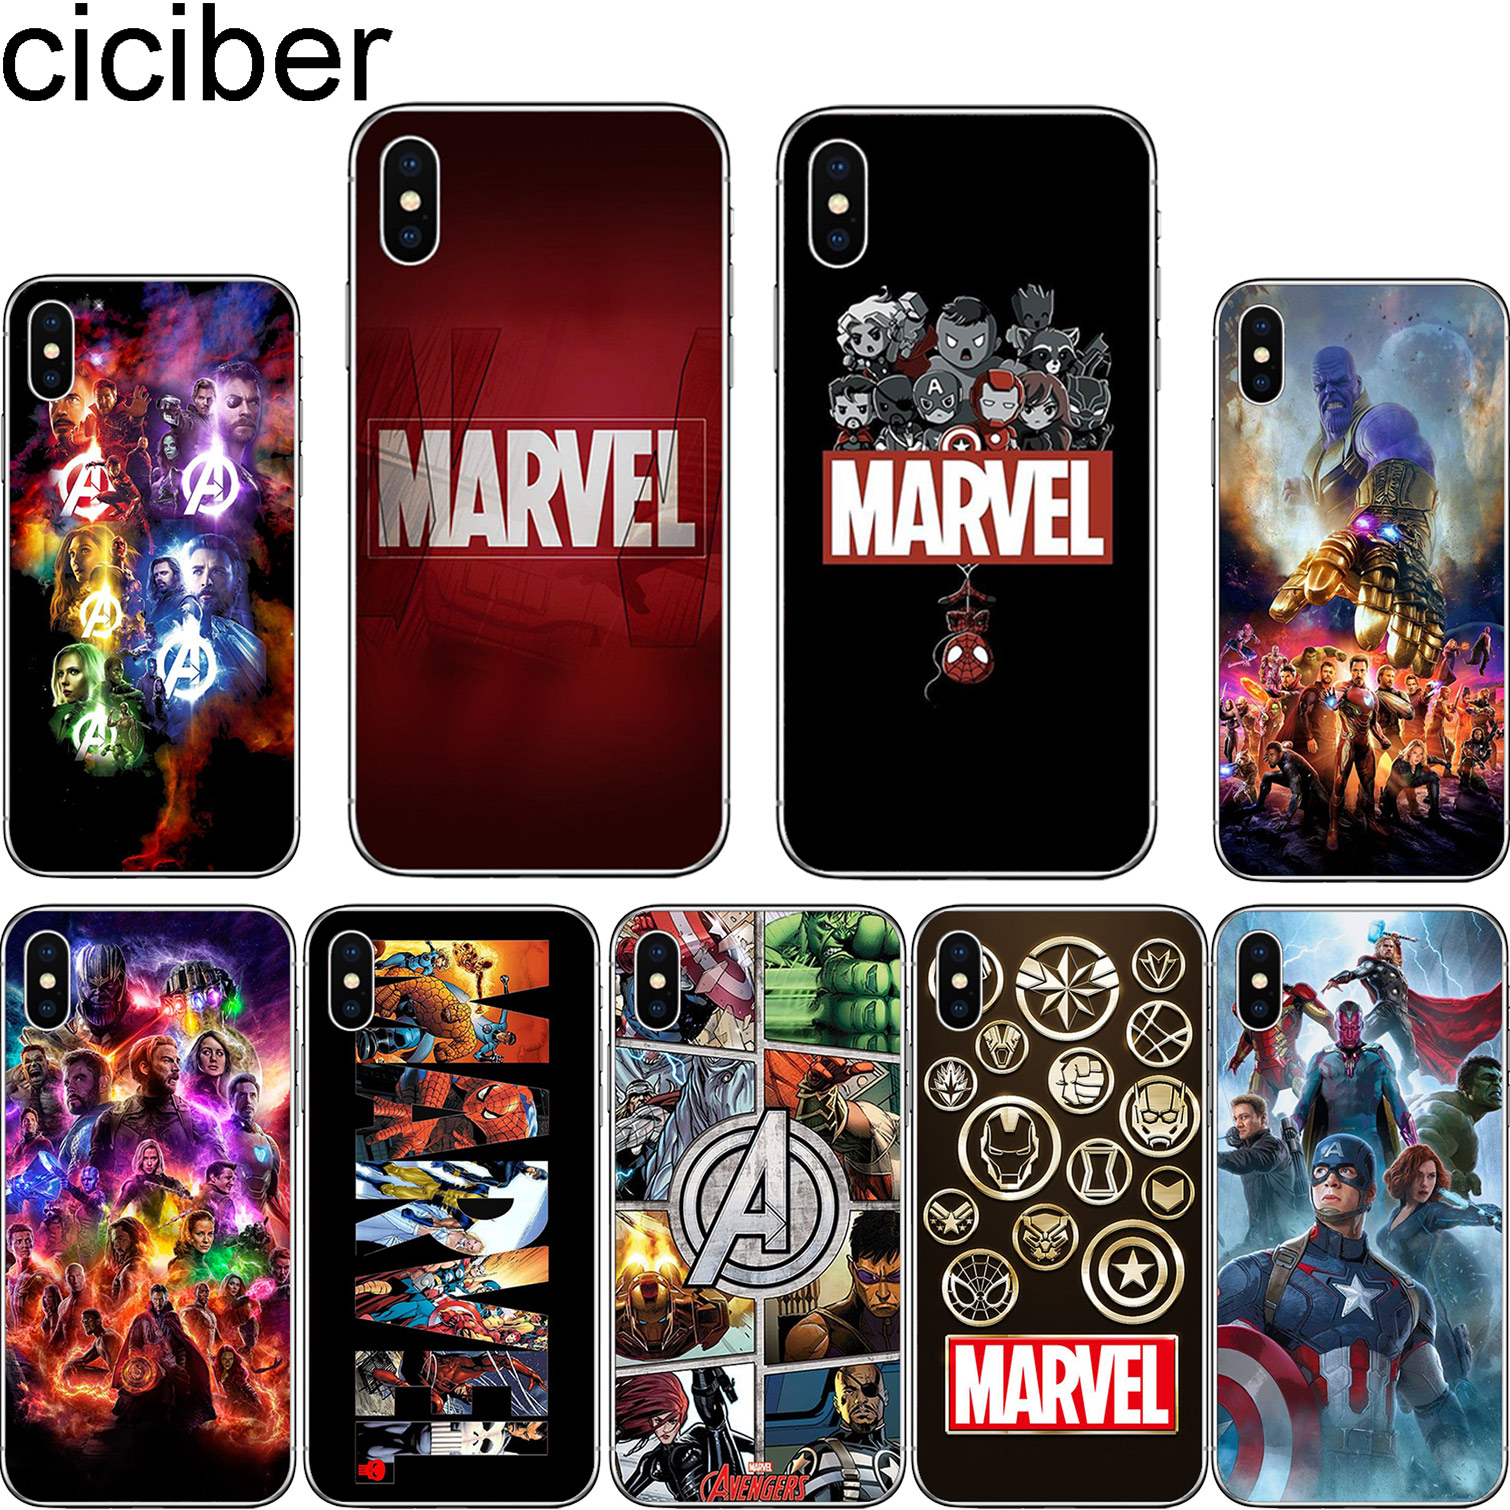 e345bef394 cicibers The Avengers Coque Phone Cases for Iphone 7 8 6 S Plus 5S SE for iphone  X XR XS MAX Soft Silicone Cover Marvel Iron Man